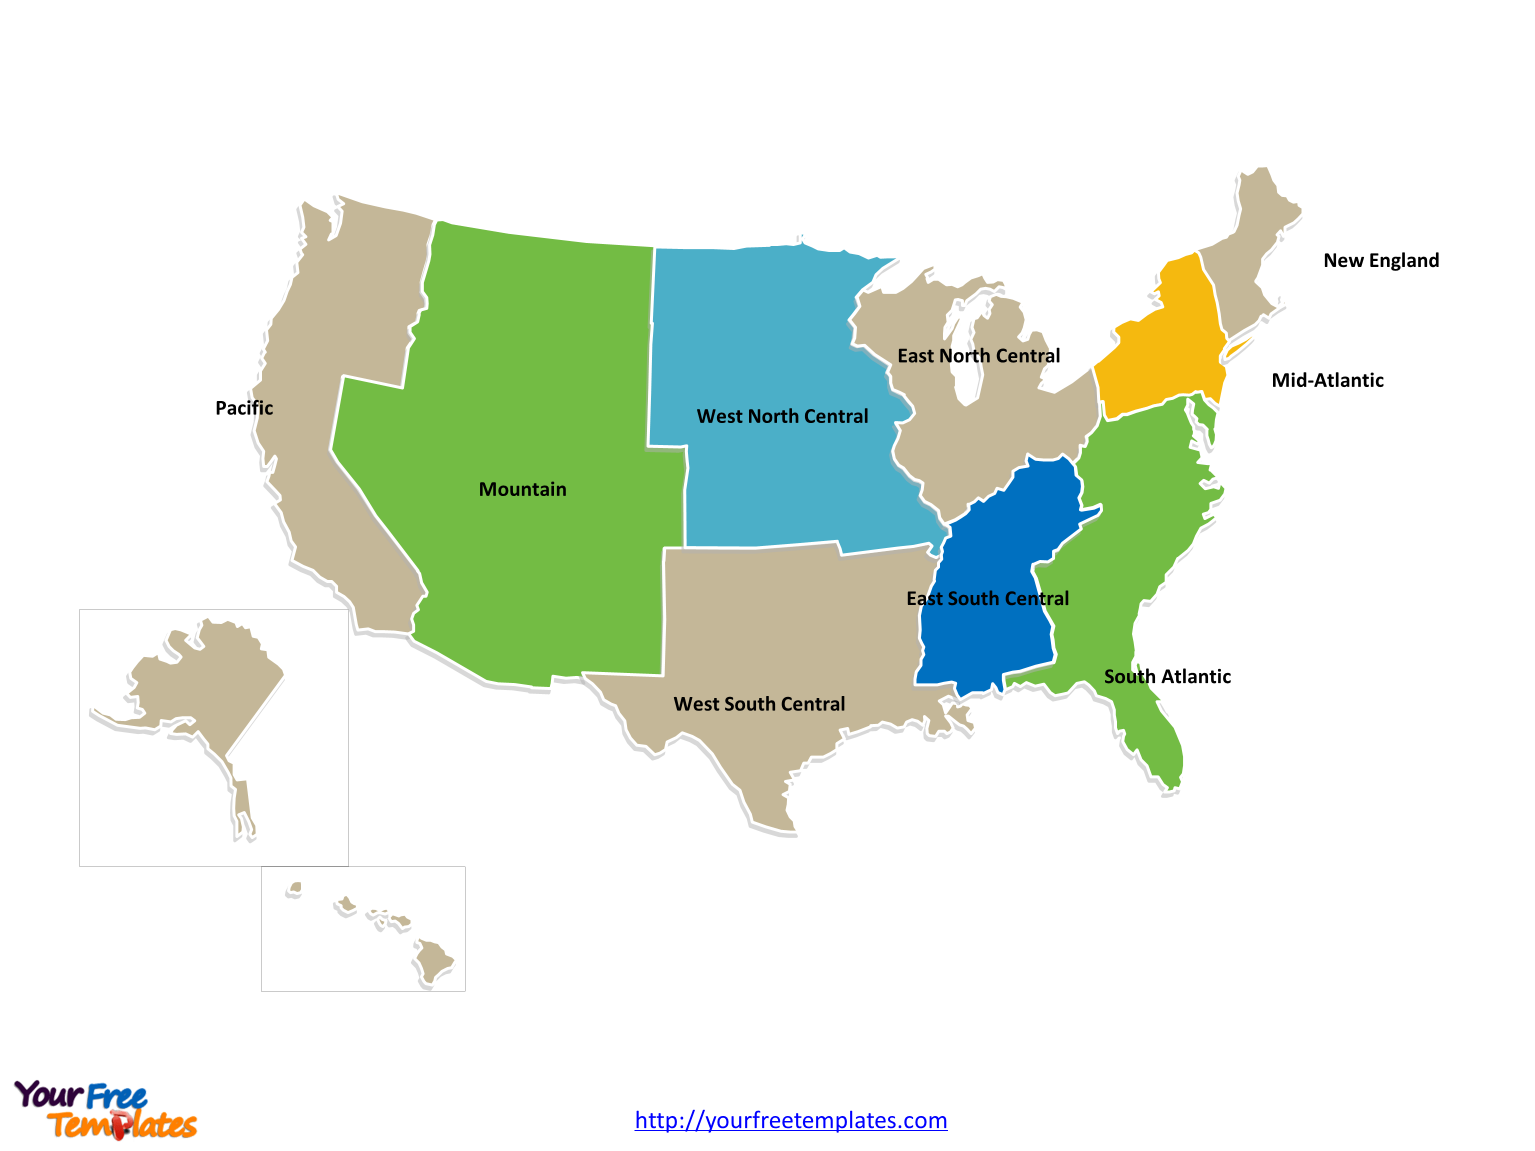 Free USA Region PowerPoint Map Free PowerPoint Templates - New england map us